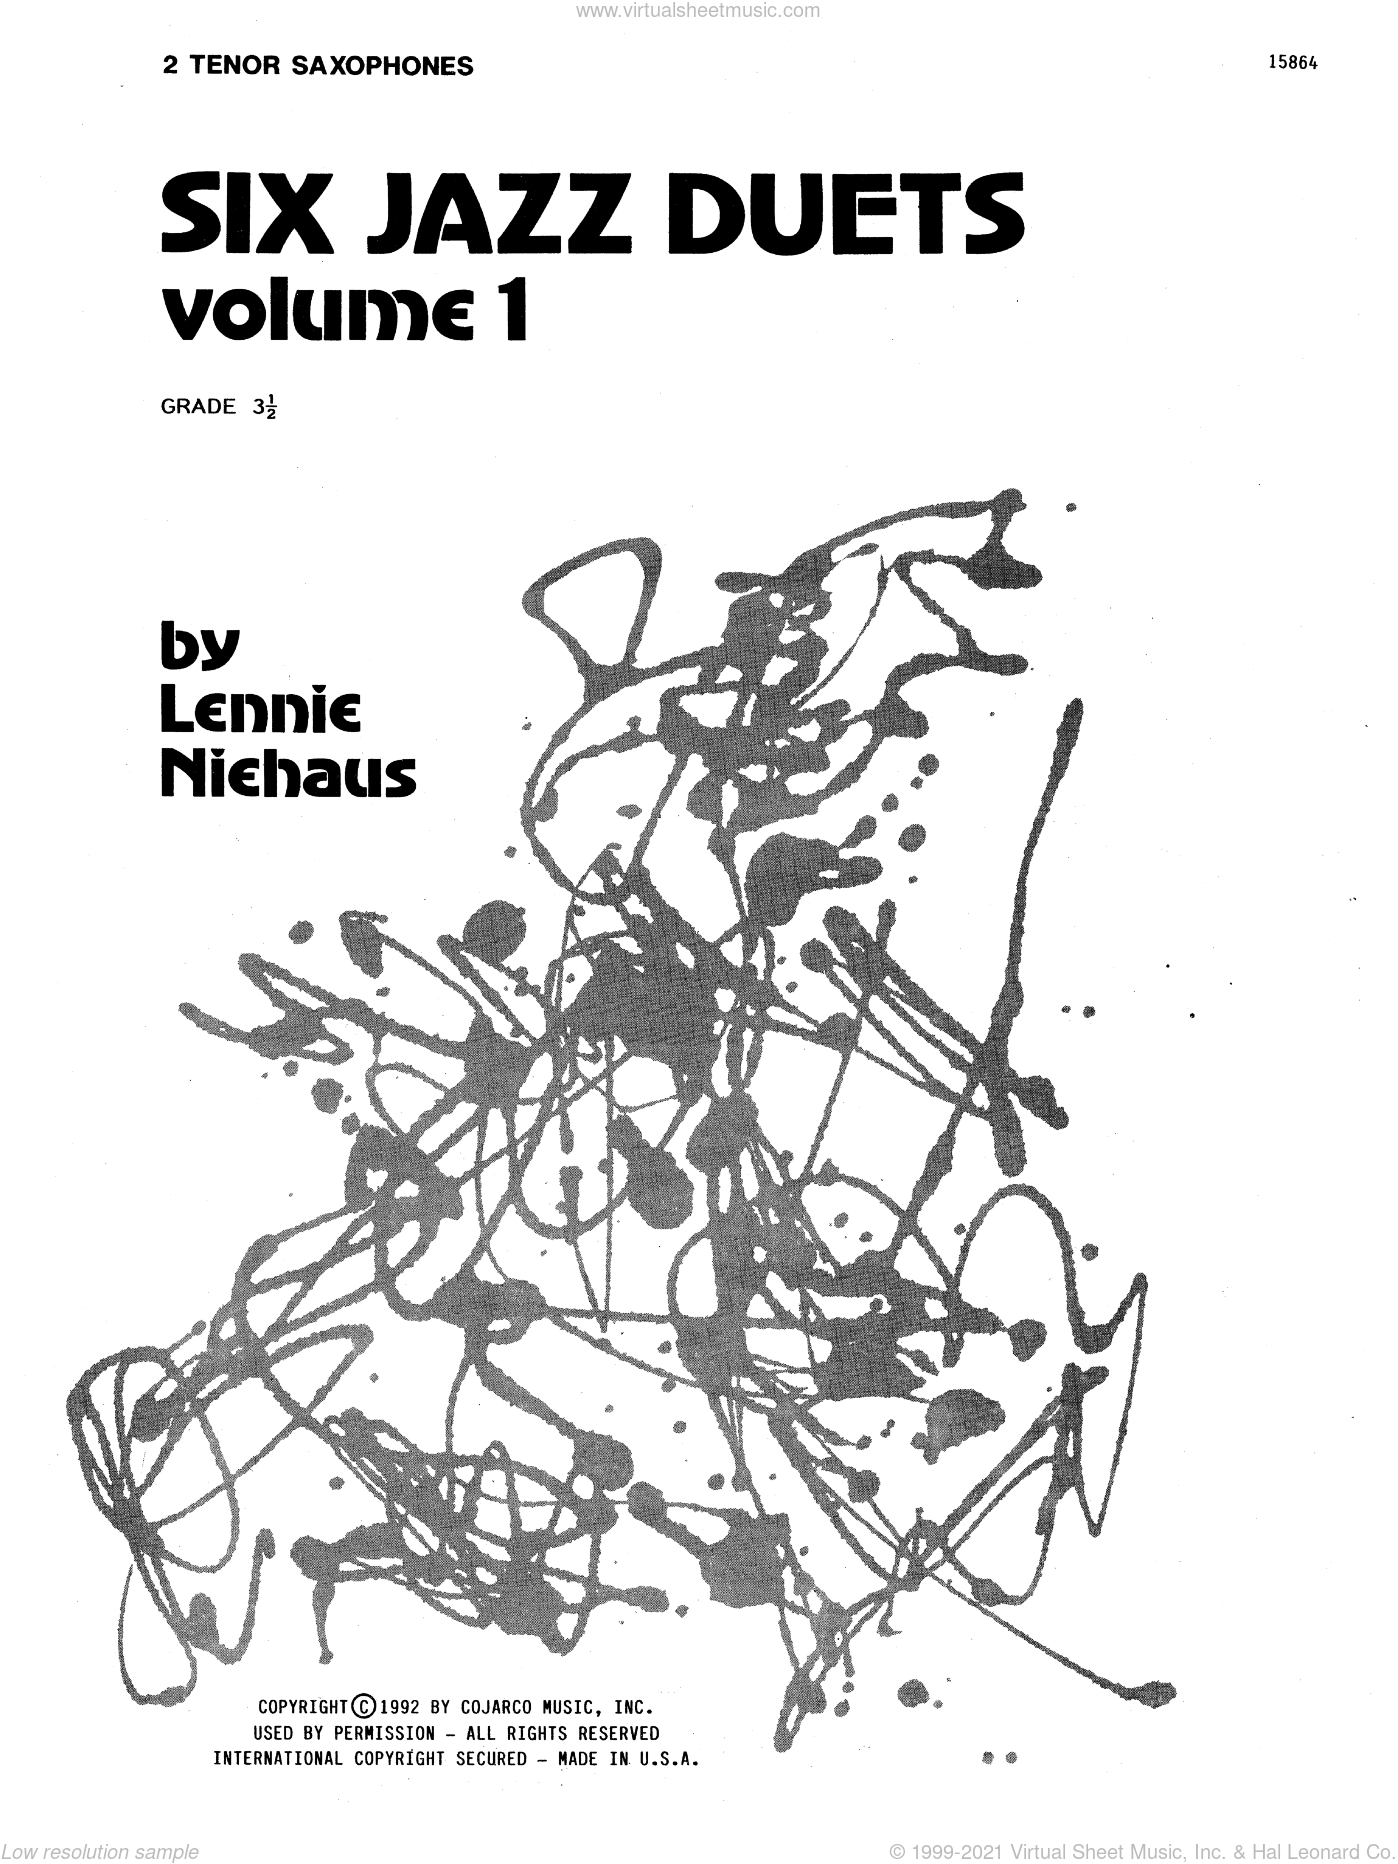 Six Jazz Duets, Volume 1 sheet music for two tenor saxophones by Lennie Niehaus, intermediate duet